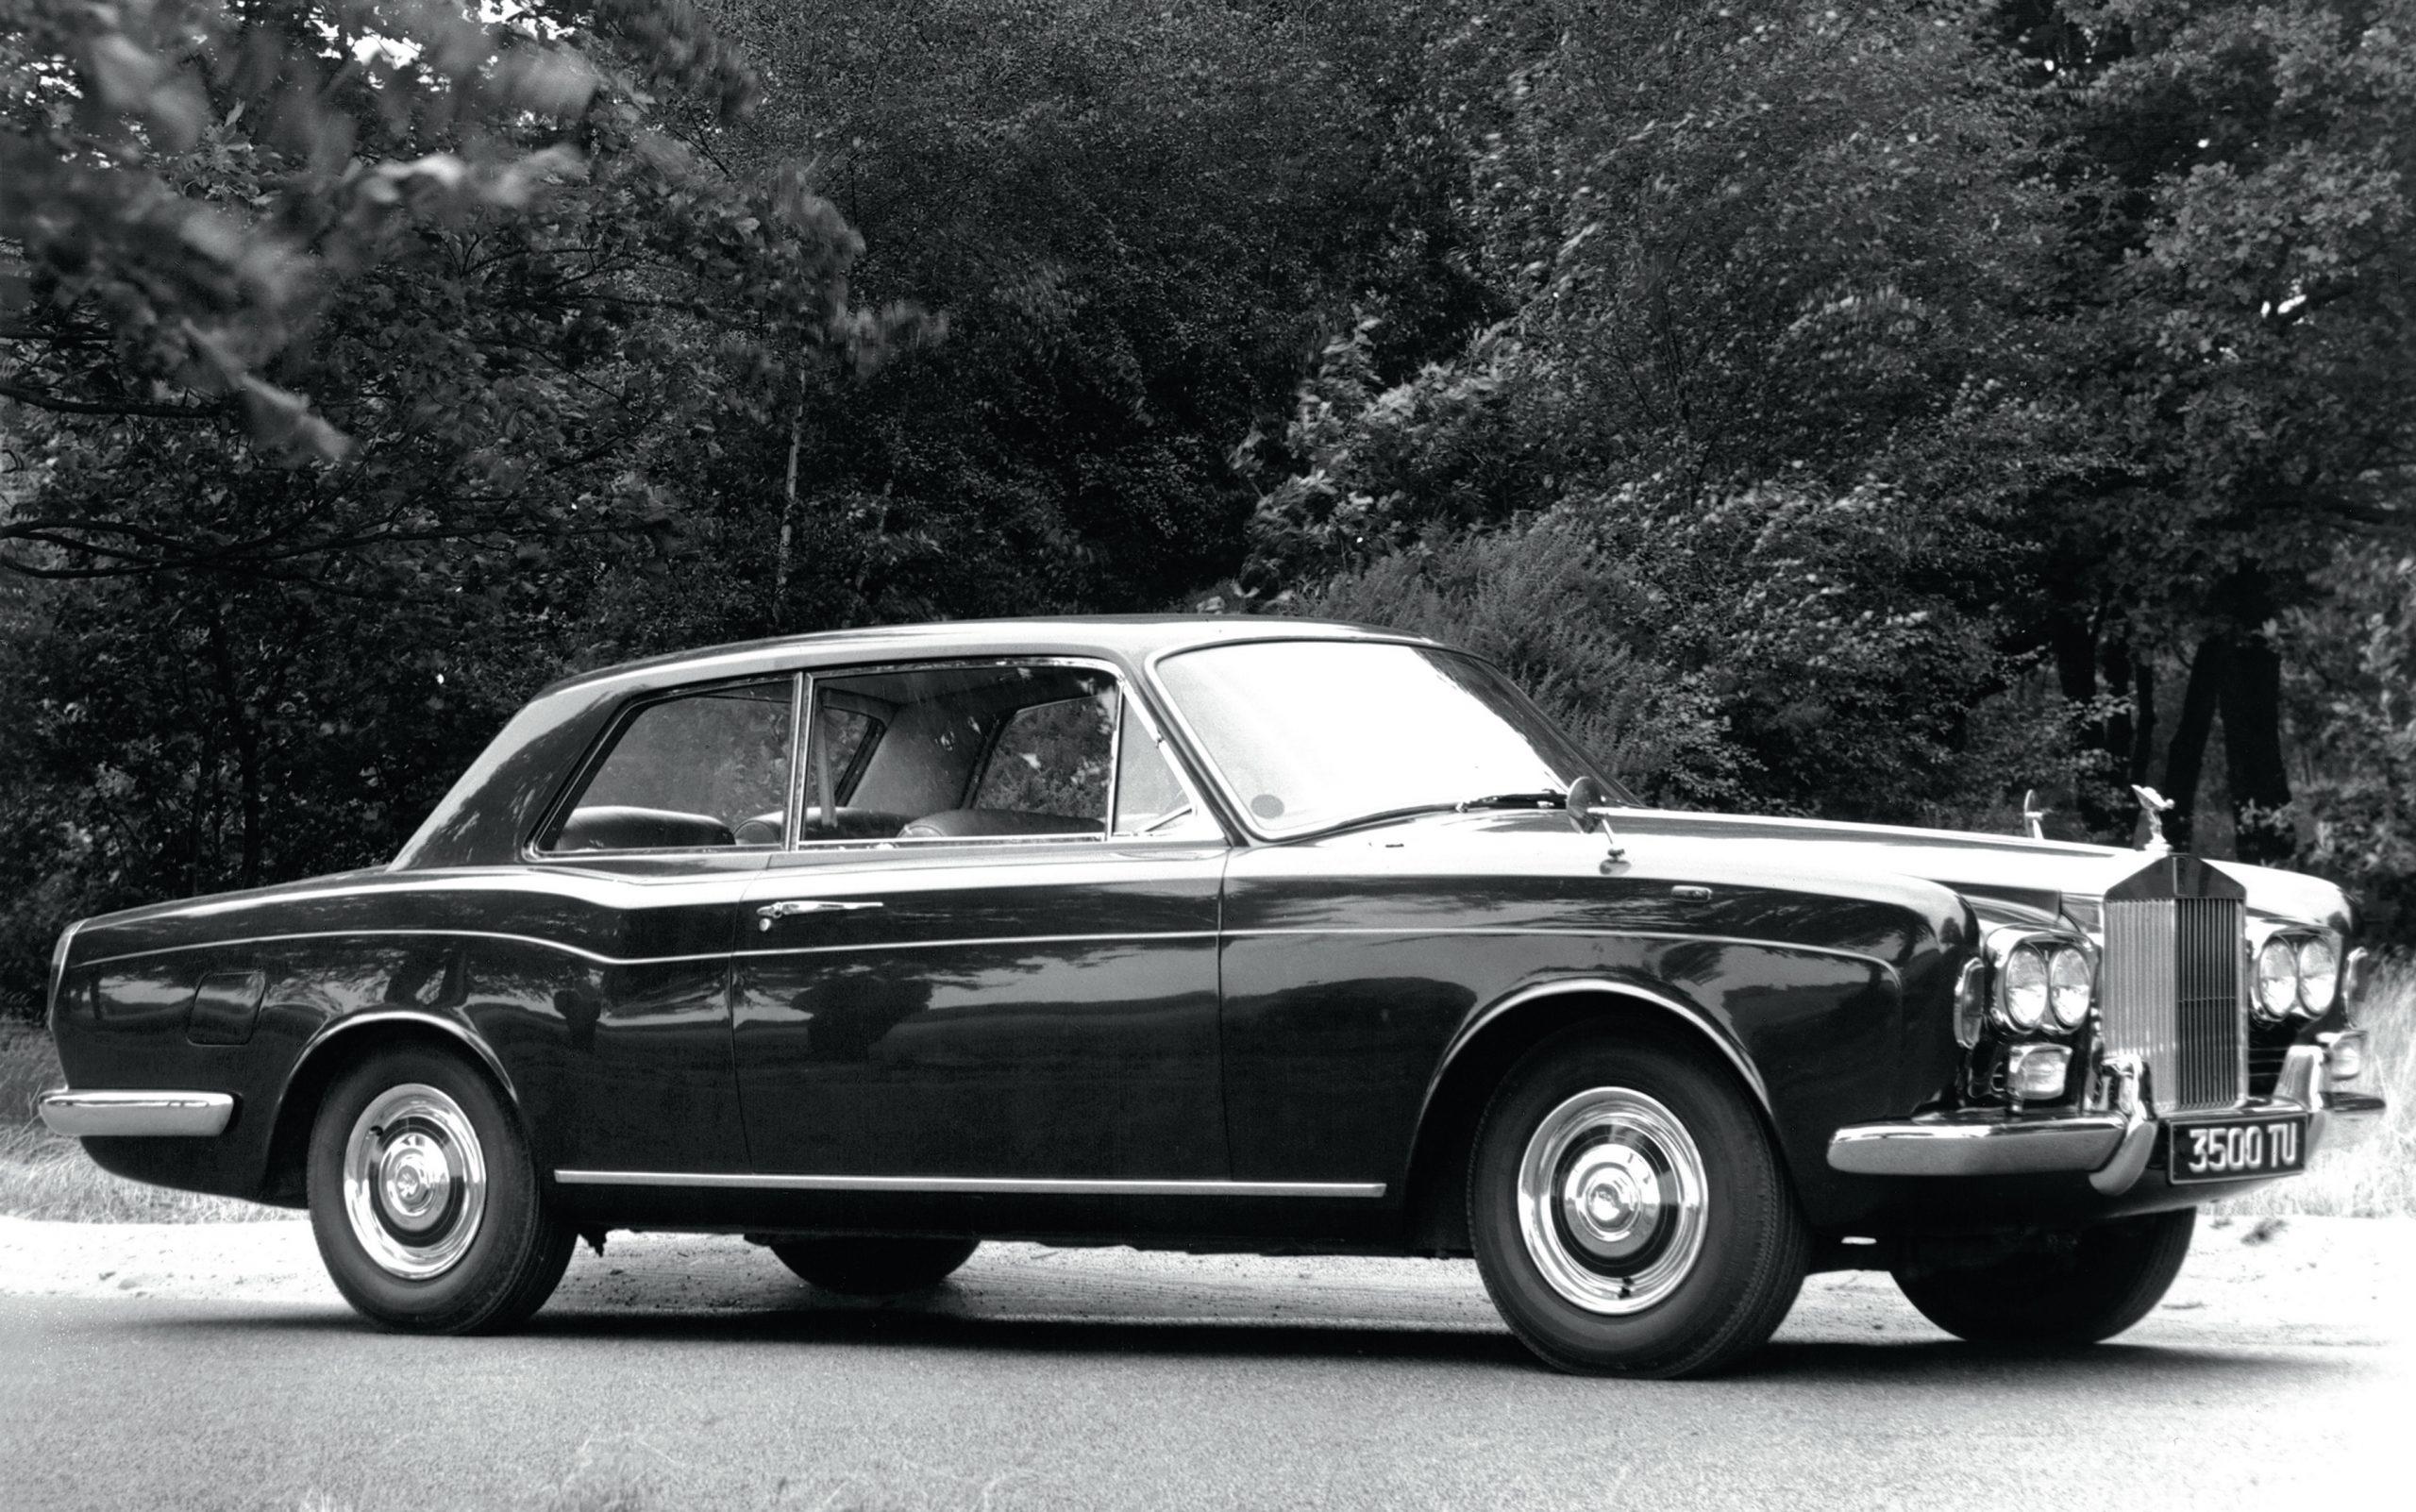 Rolls Royce Corniche 1971 black and white